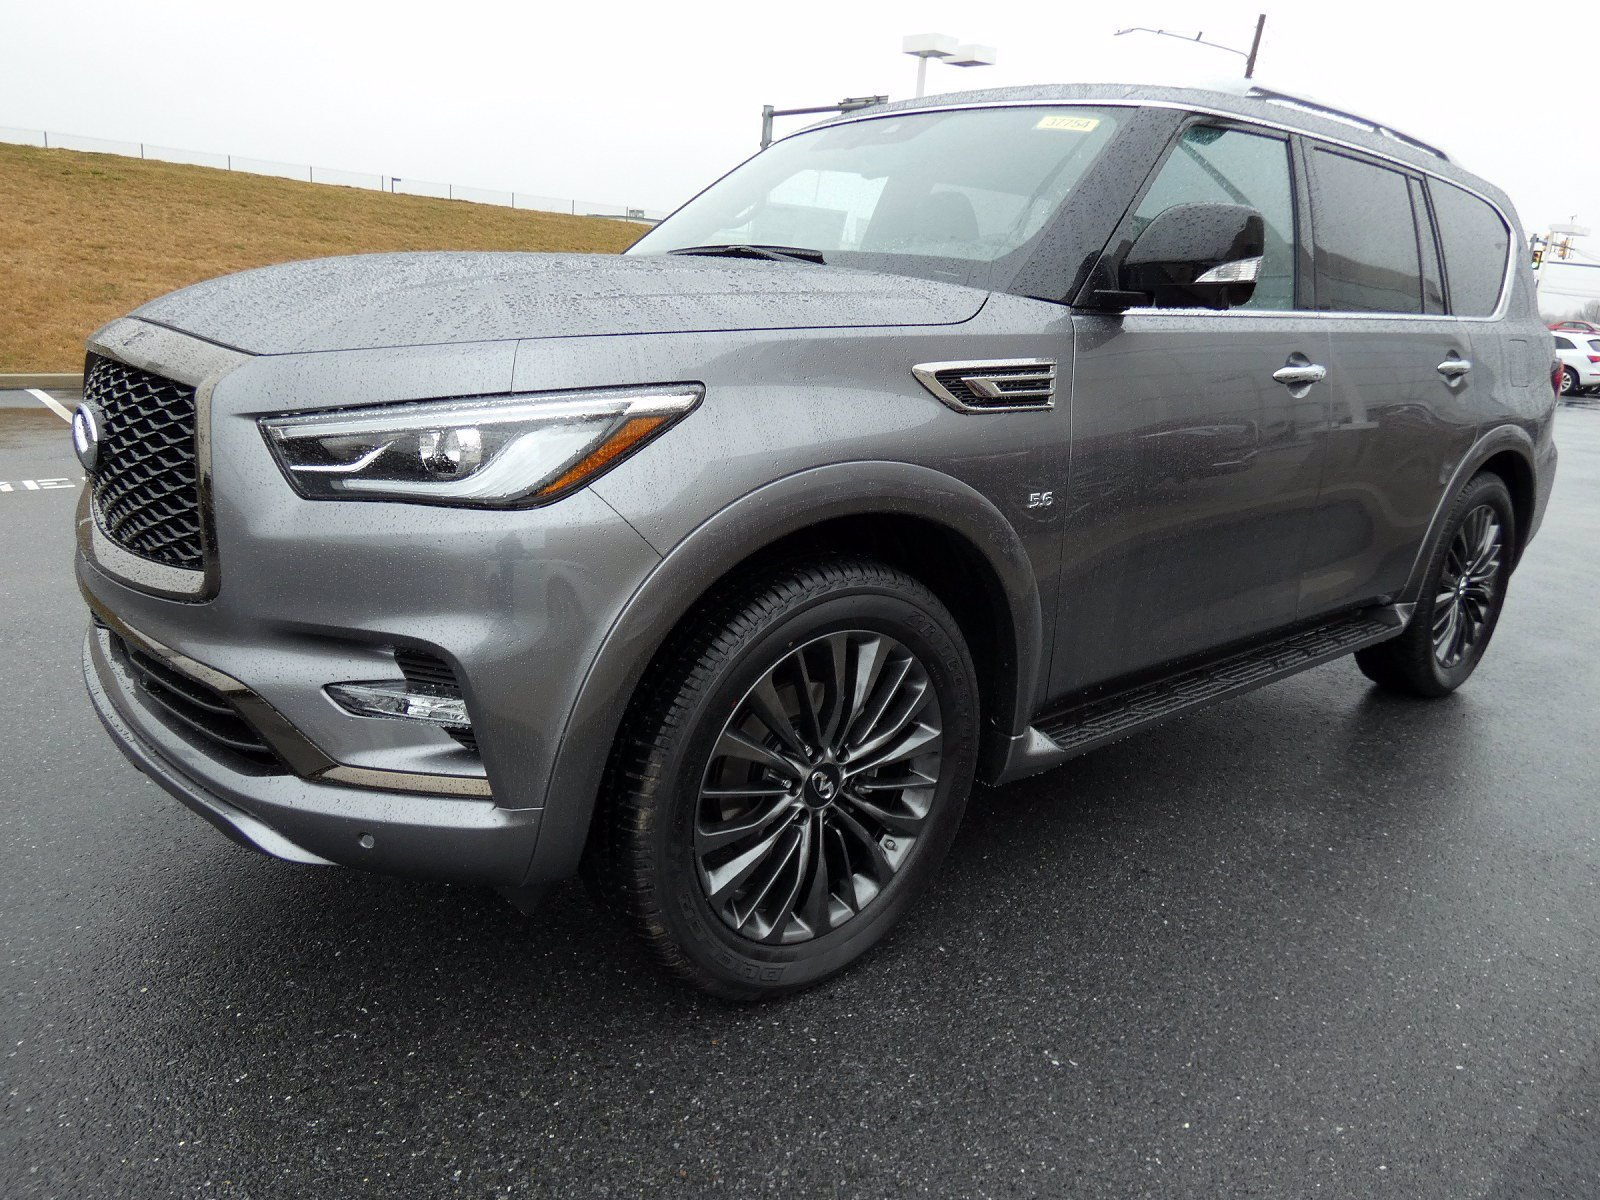 new 2020 infiniti qx80 luxe 4wd suv in allentown #37754